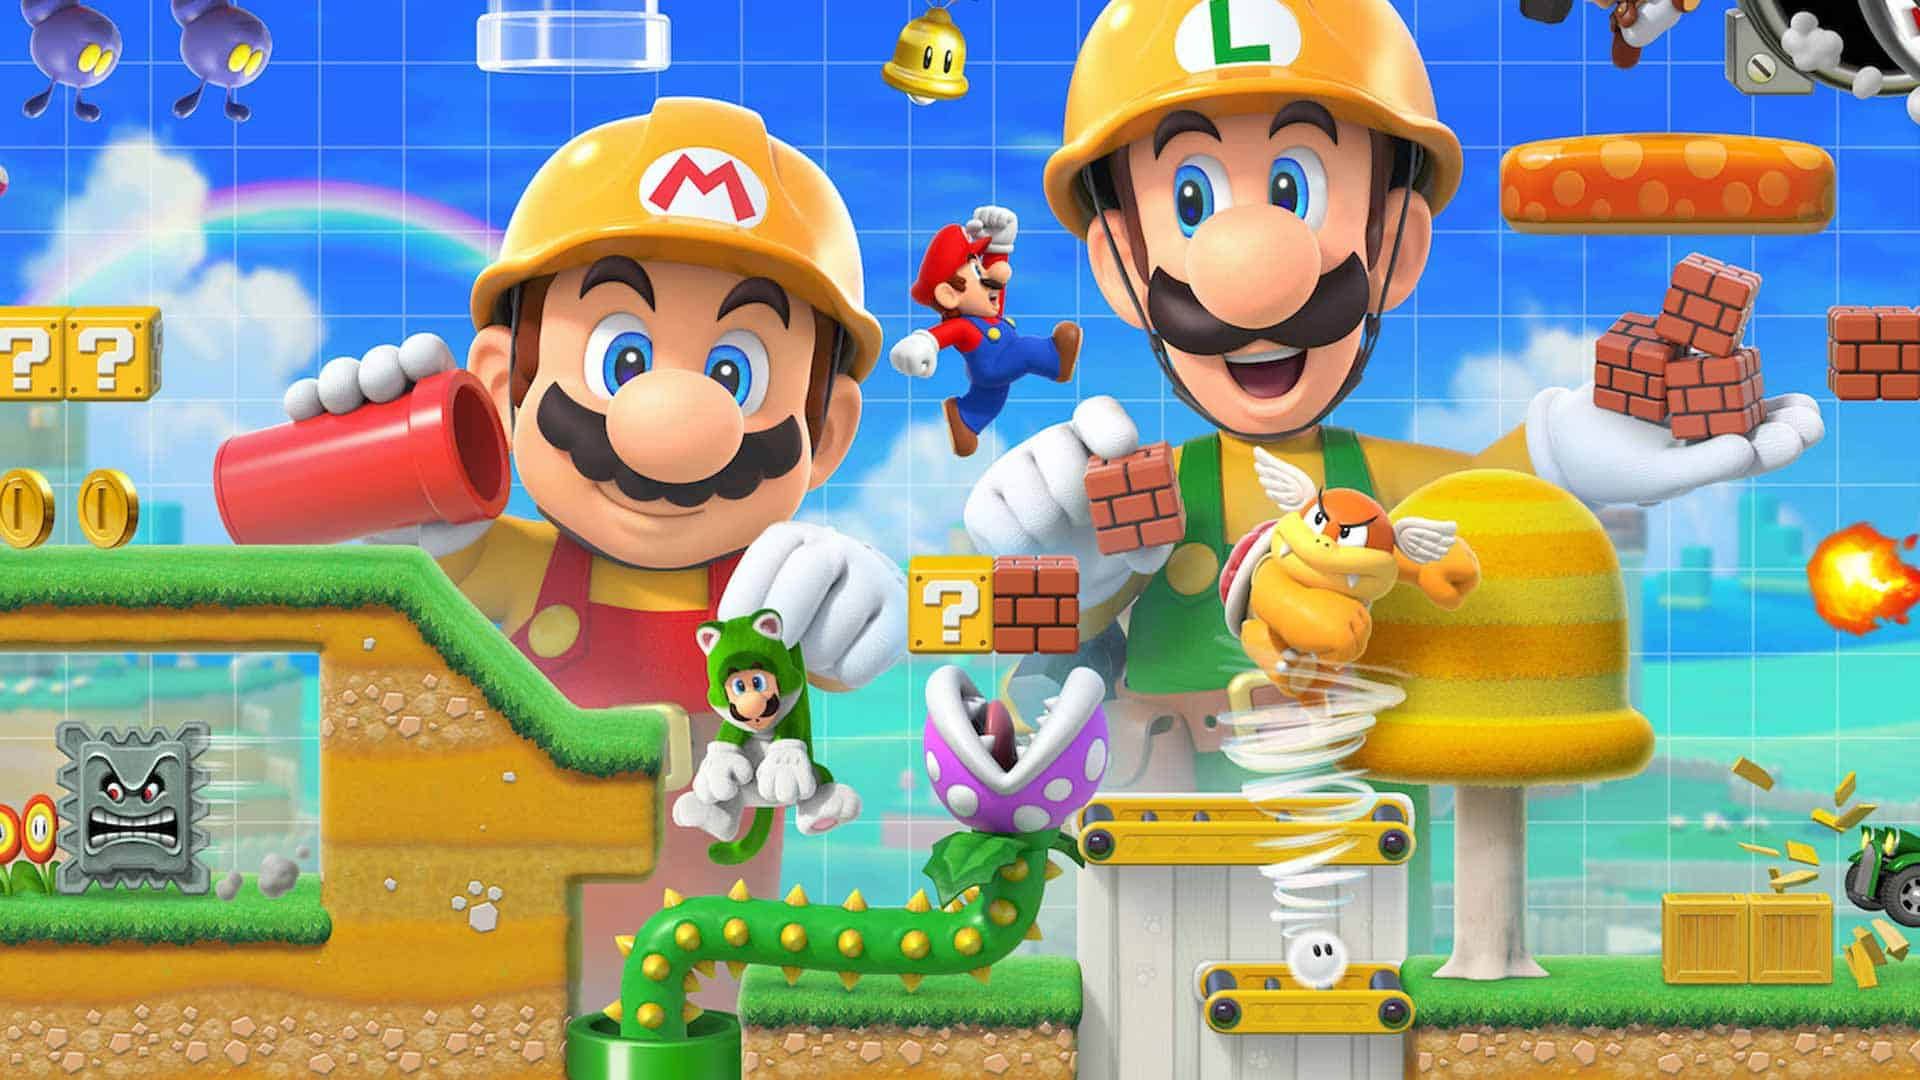 Download Super Mario Maker 2 Game Wallpaper 68161 1920x1080 px High